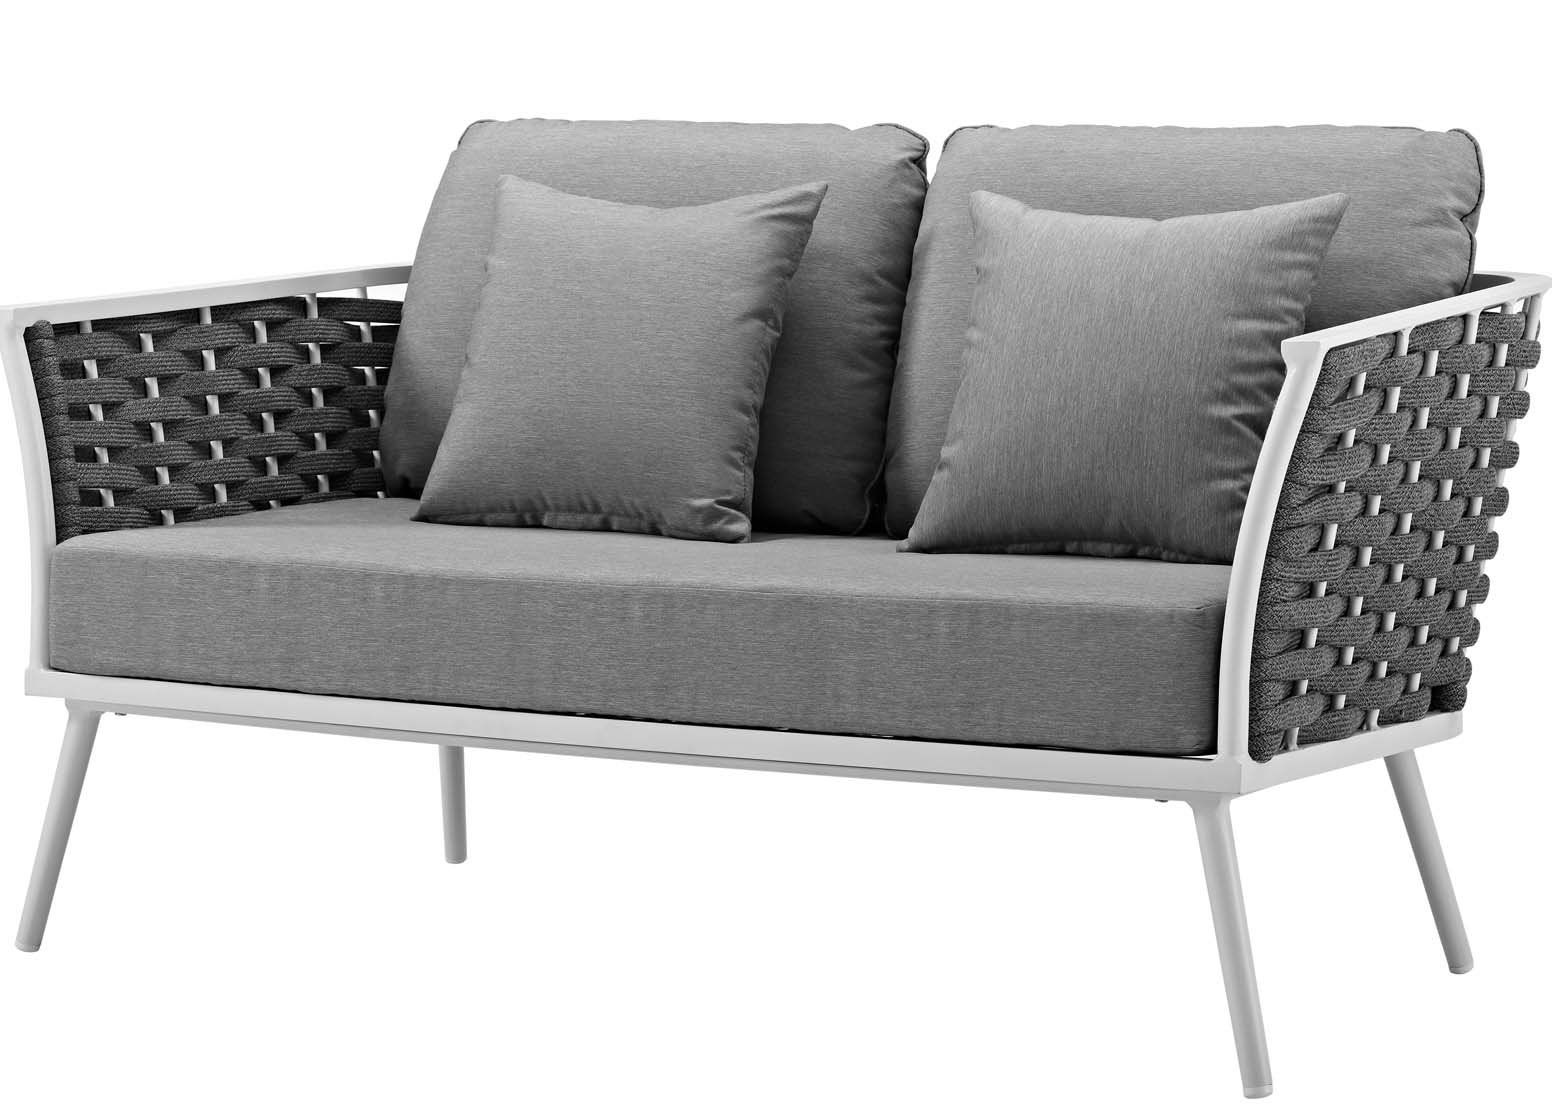 Rossville Outdoor Loveseat With Cushions With Regard To 2020 Bristol Loveseats With Cushions (View 16 of 20)